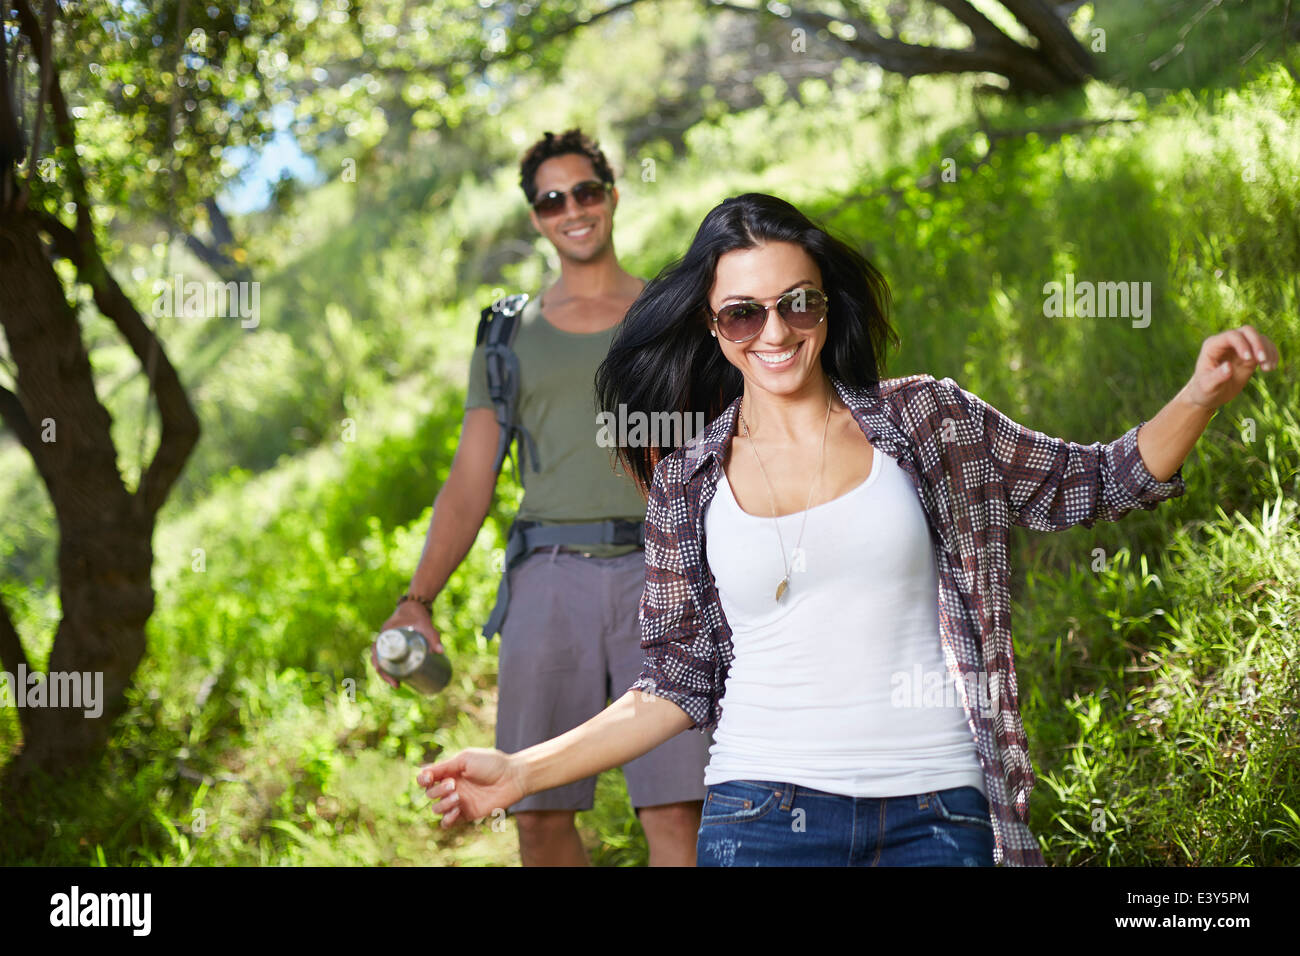 Smiling couple walking in woodlands - Stock Image